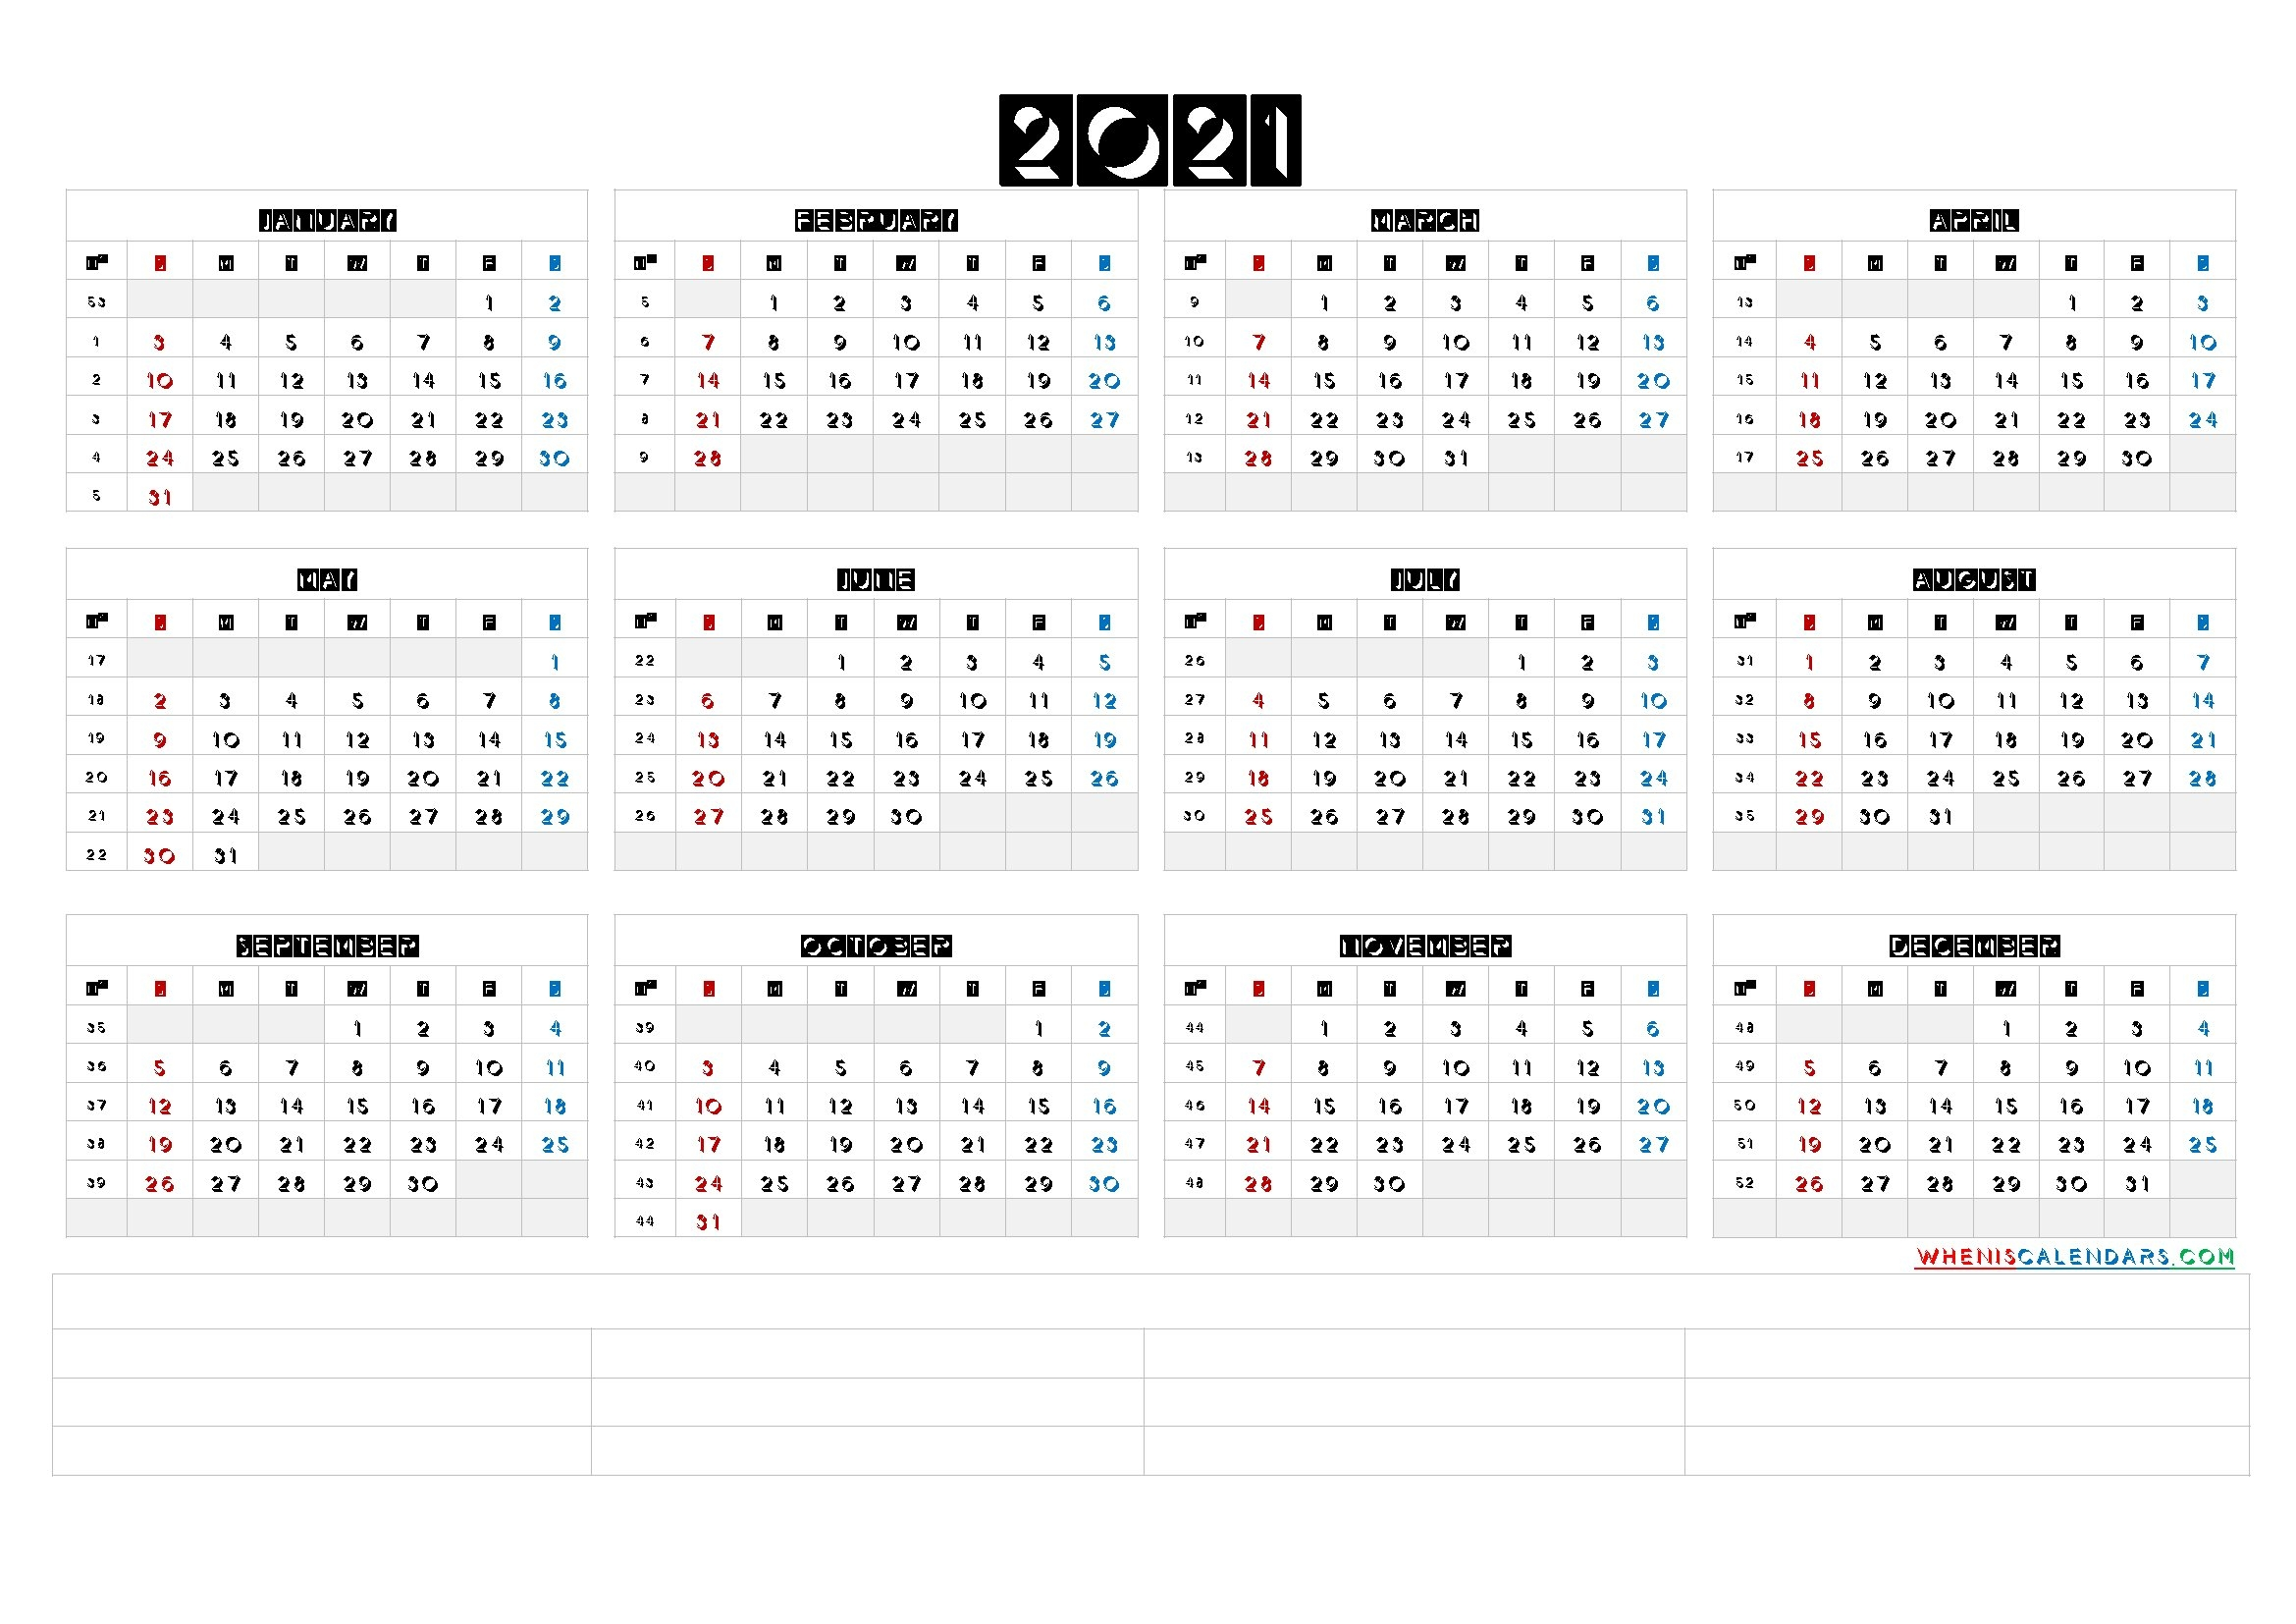 Free Printable 2021 Yearly Calendar With Week Numbers (6 Templates) inside Calendar For Year 2021 With Weeks Numbered